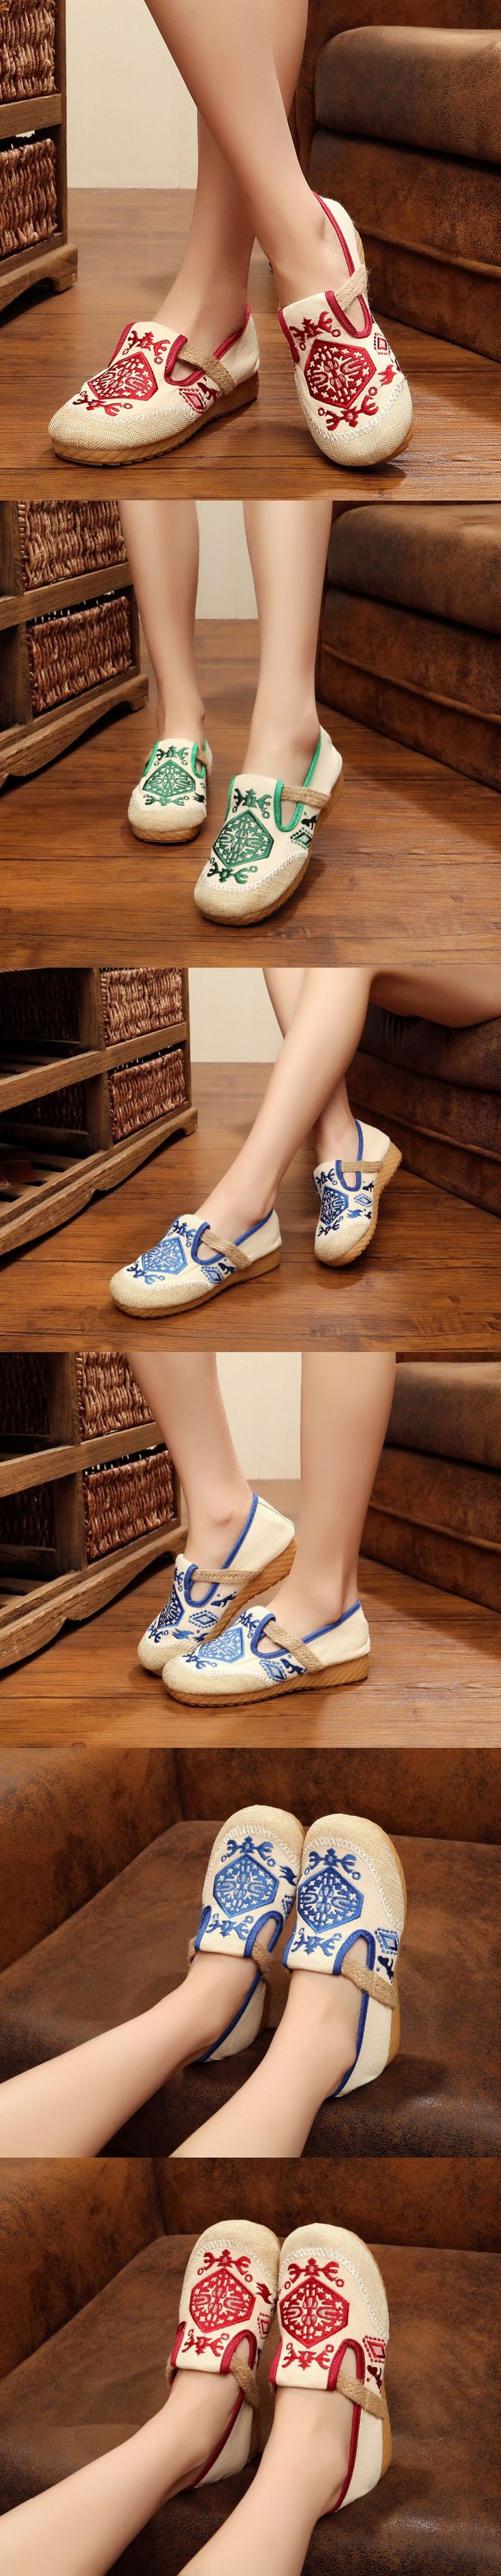 New Fashion Kid shoes Women Casual Walking Shoes Chinese Style Old Peking Ballet Flats Flower Embroidery Canvas Casual shoes $26.58